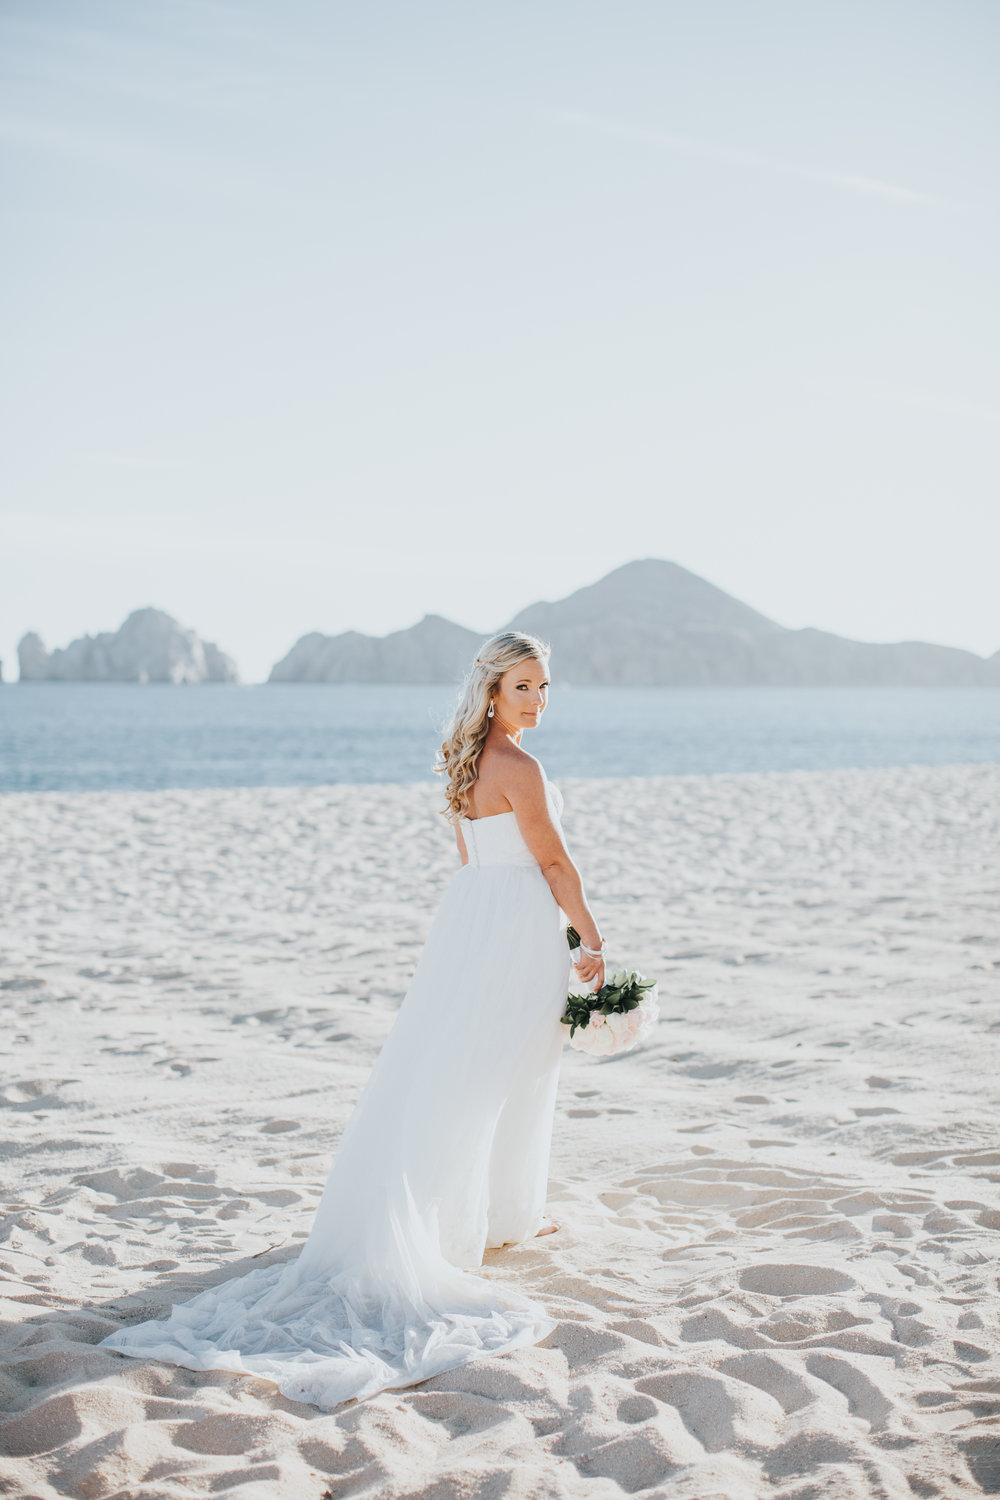 Ashleynickdestinationweddingmexicorivkahphotography-12.jpg